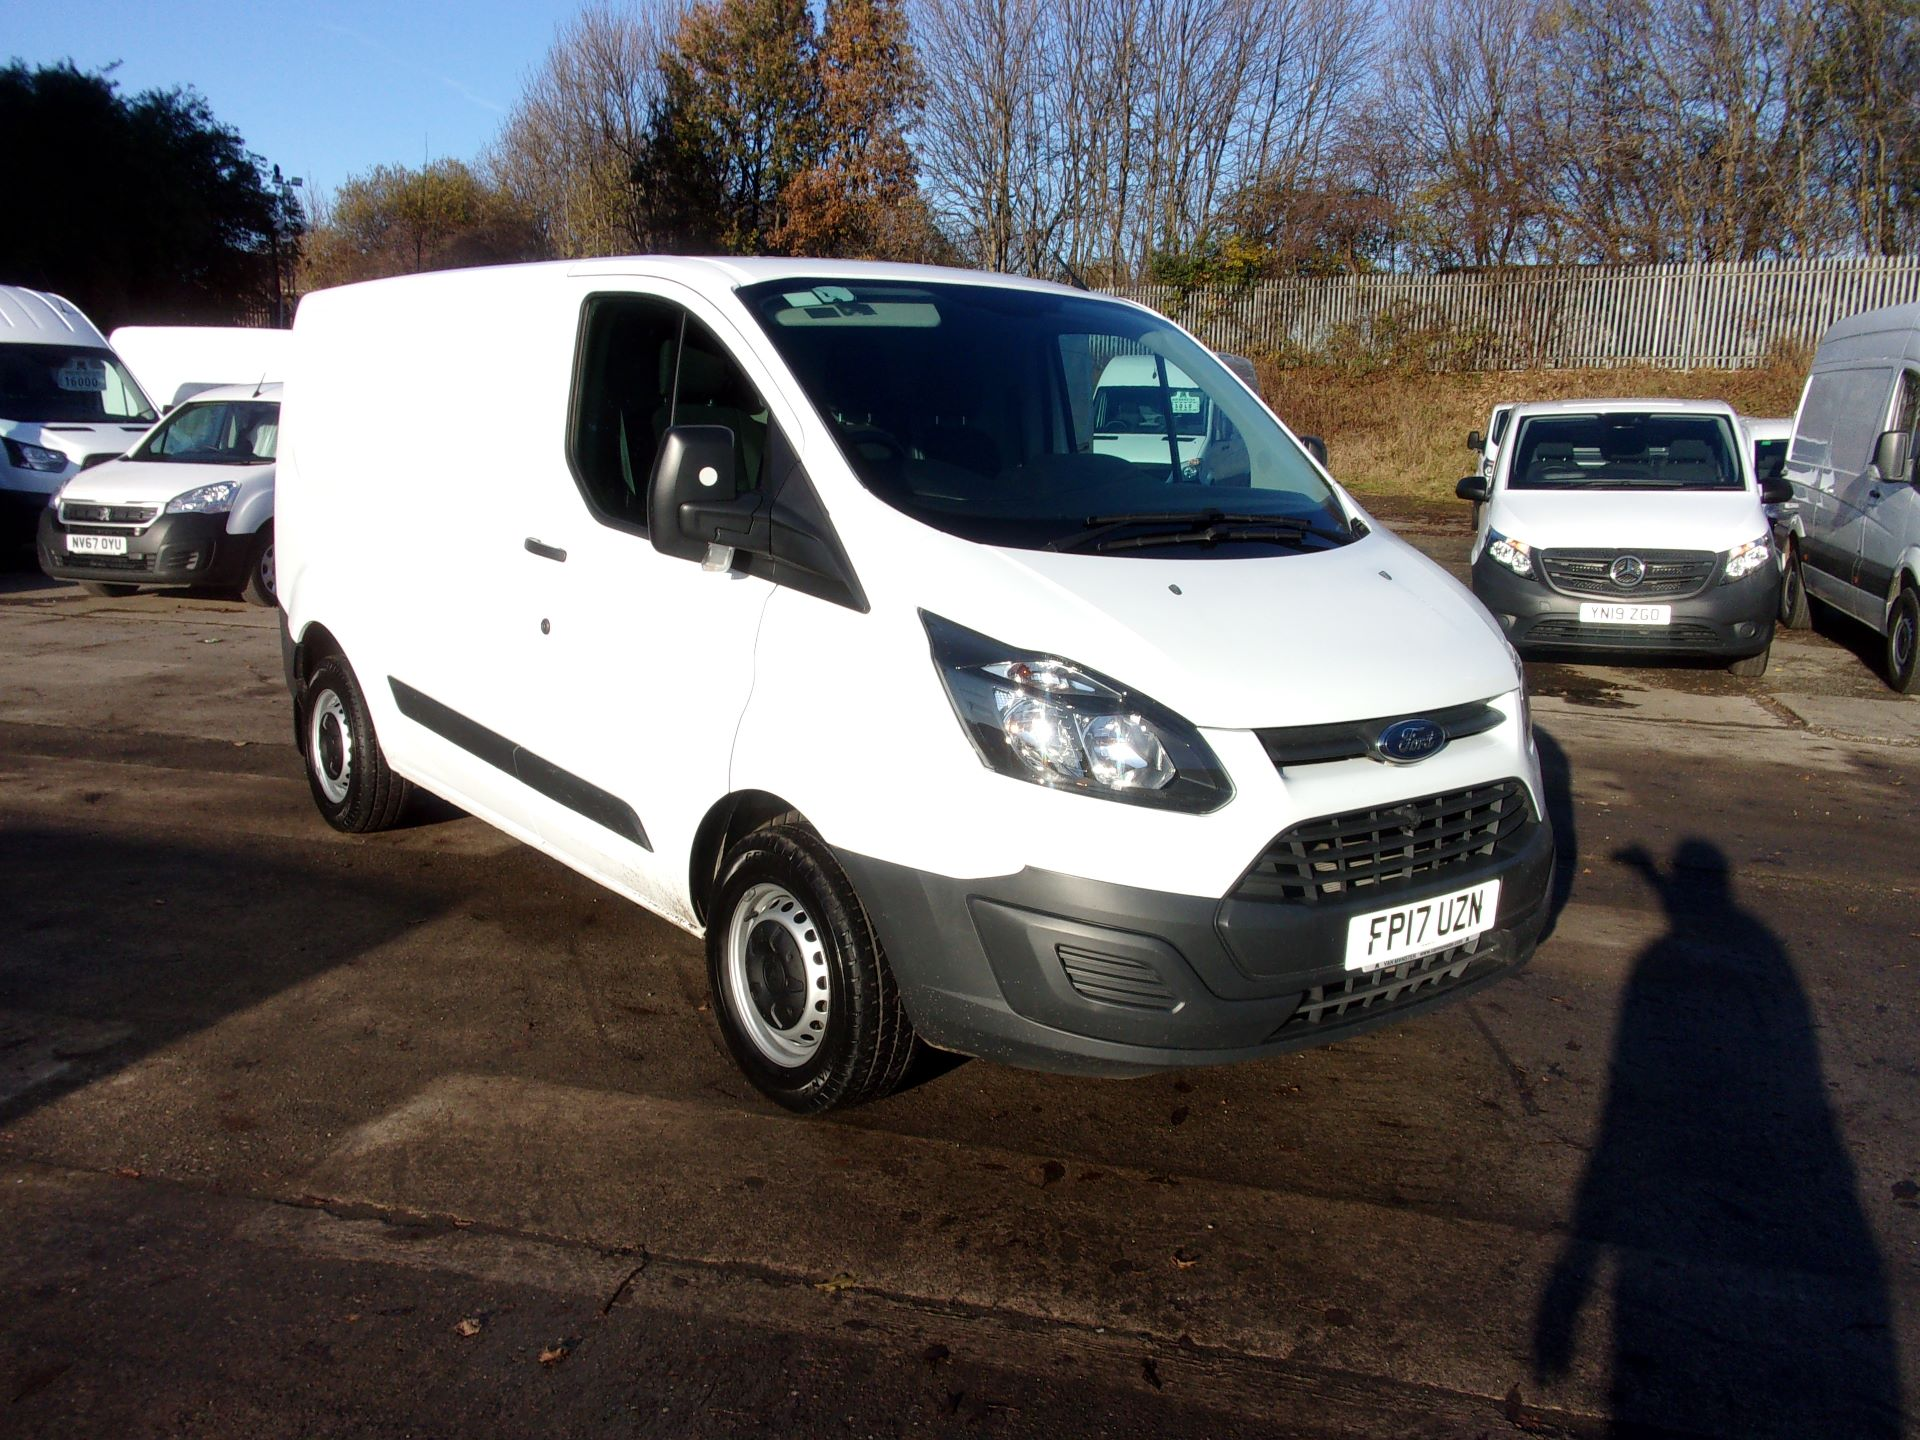 2017 Ford Transit Custom 290 L1 DIESEL FWD 2.0 TDCI 105PS LOW ROOF VAN EURO 6 (FP17UZN)